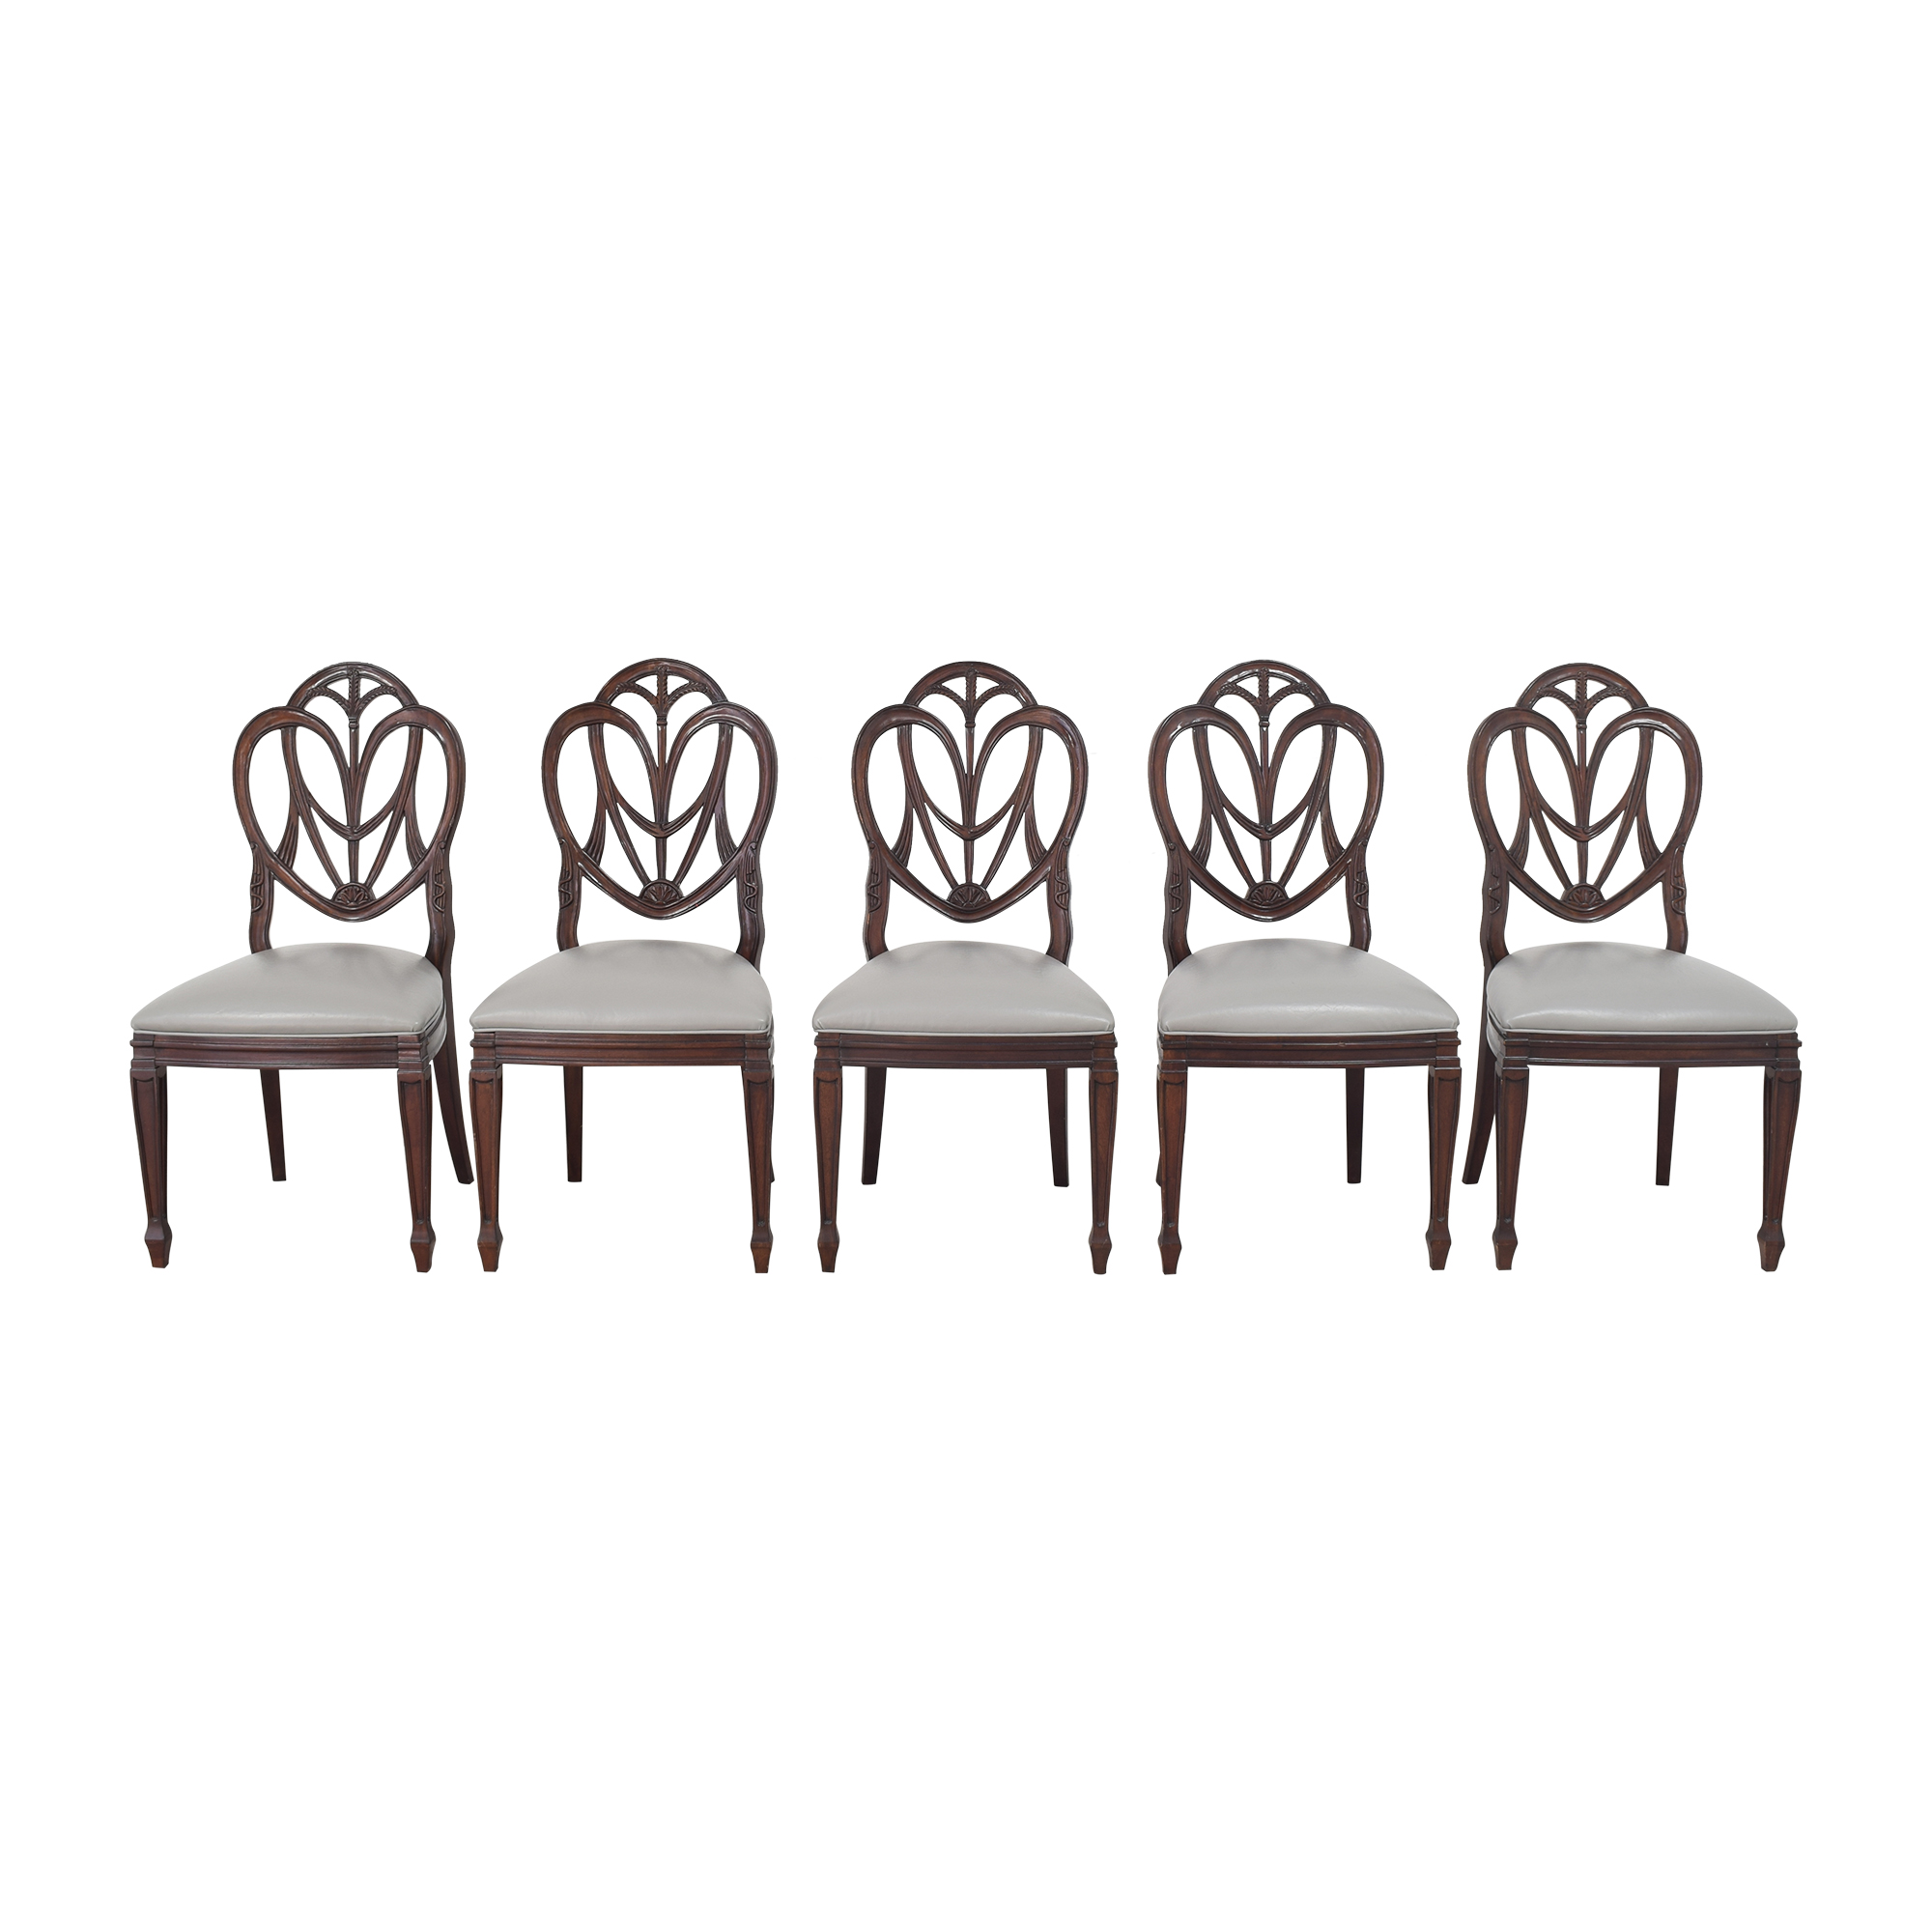 buy Drexel Heritage Drexel Heritage British Accents Dining Chairs online